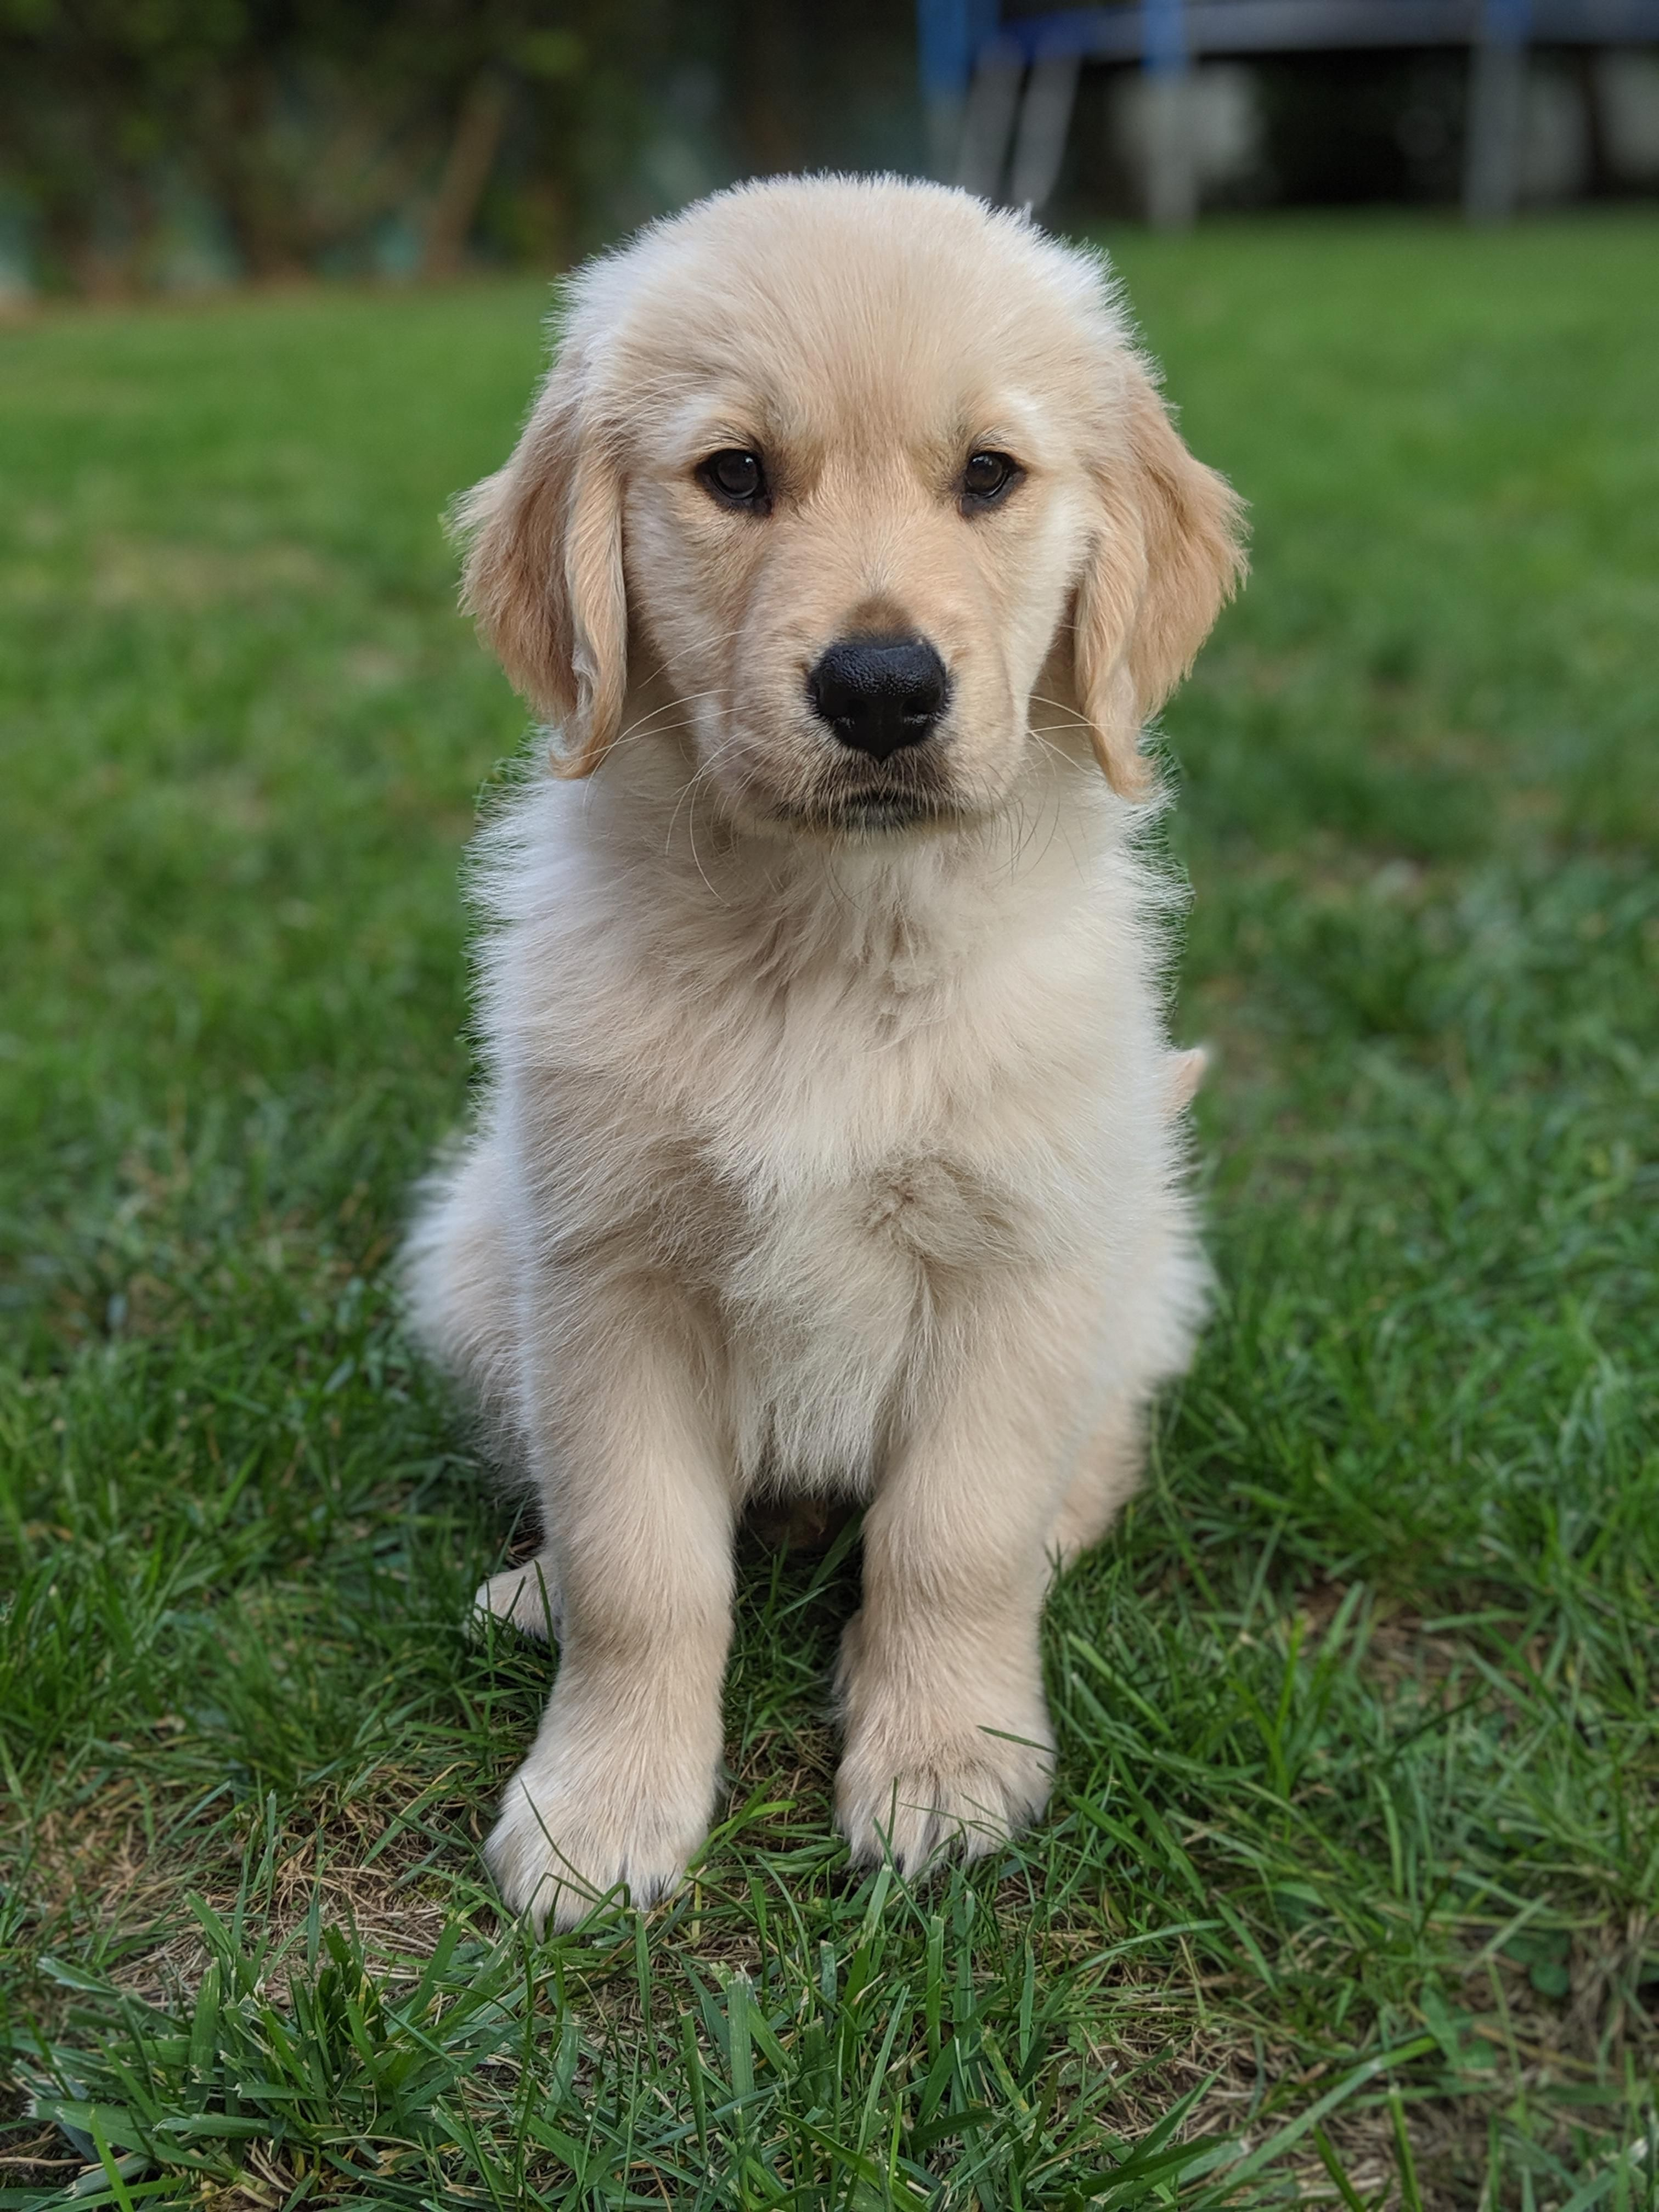 Maximum Cuteness In Need Of A Hug Goldenretriever Golden